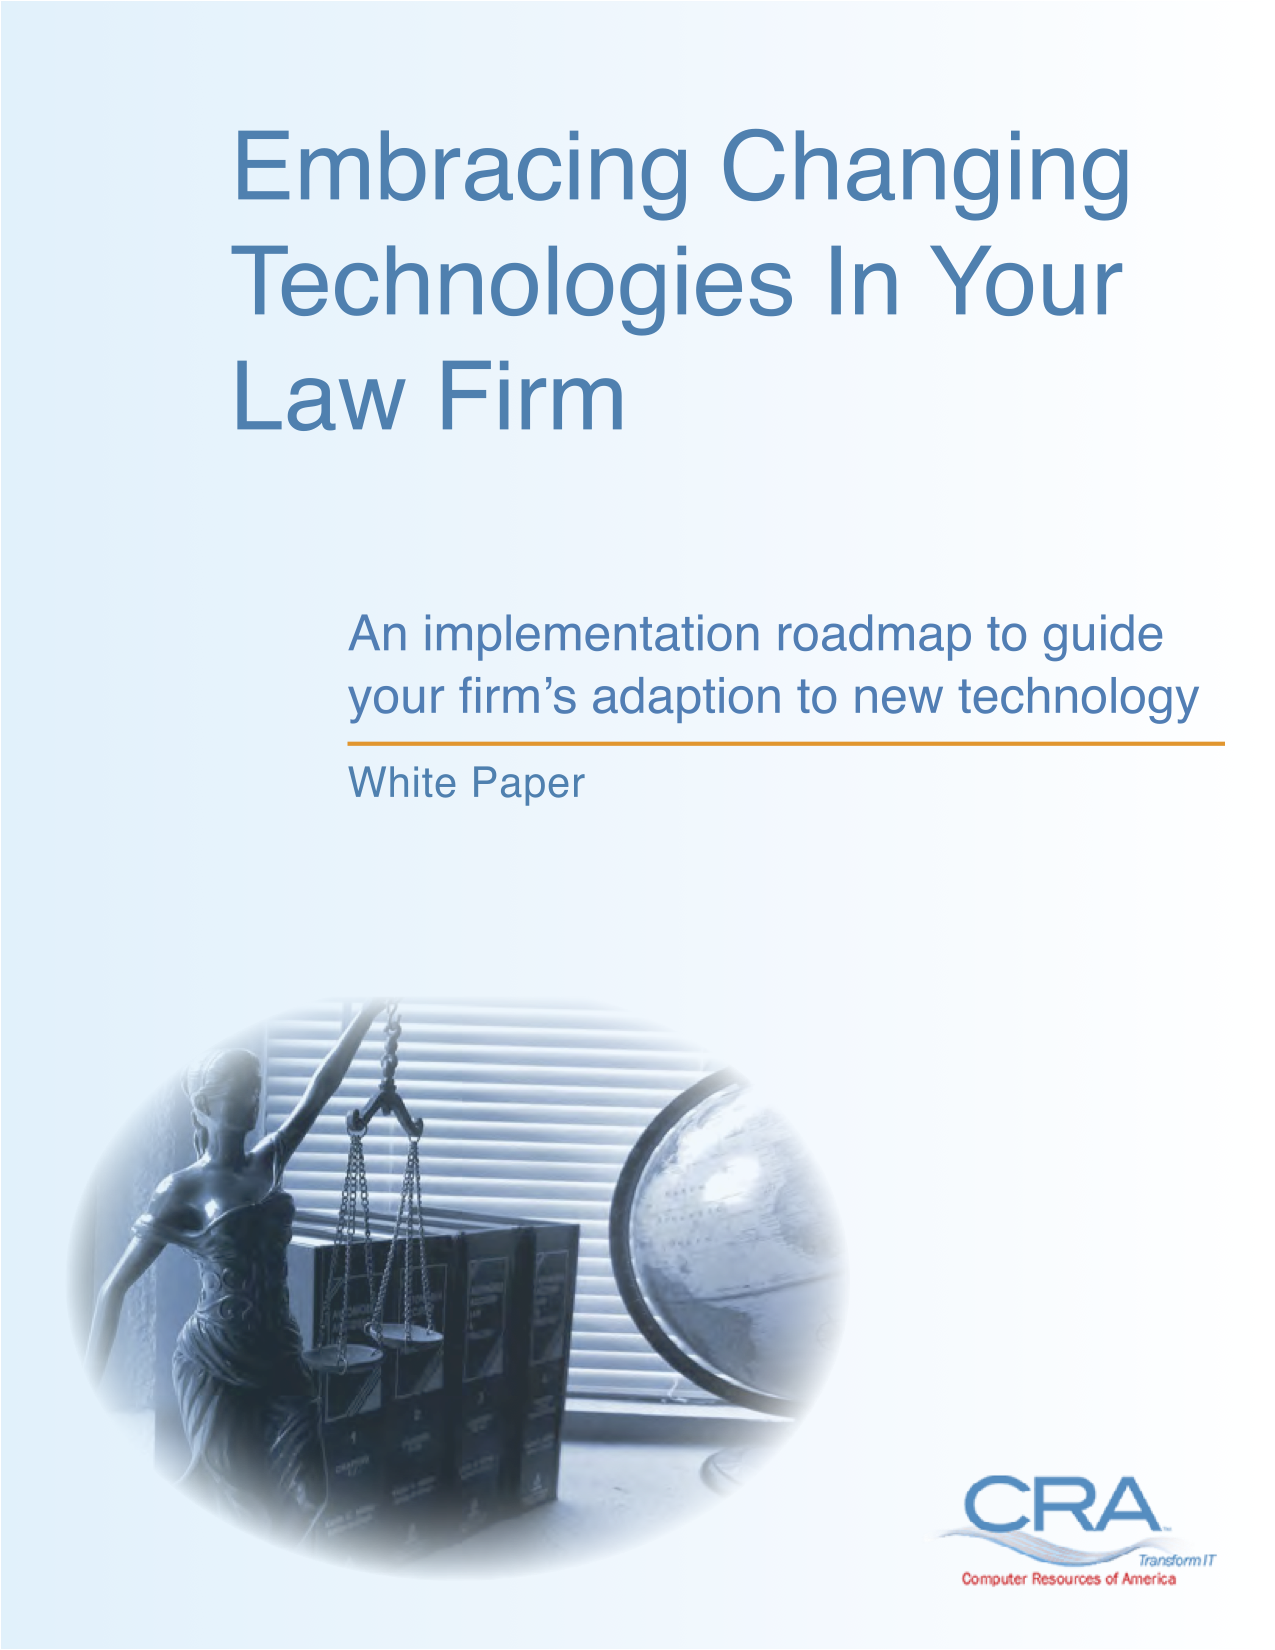 Legal Technologies White Paper